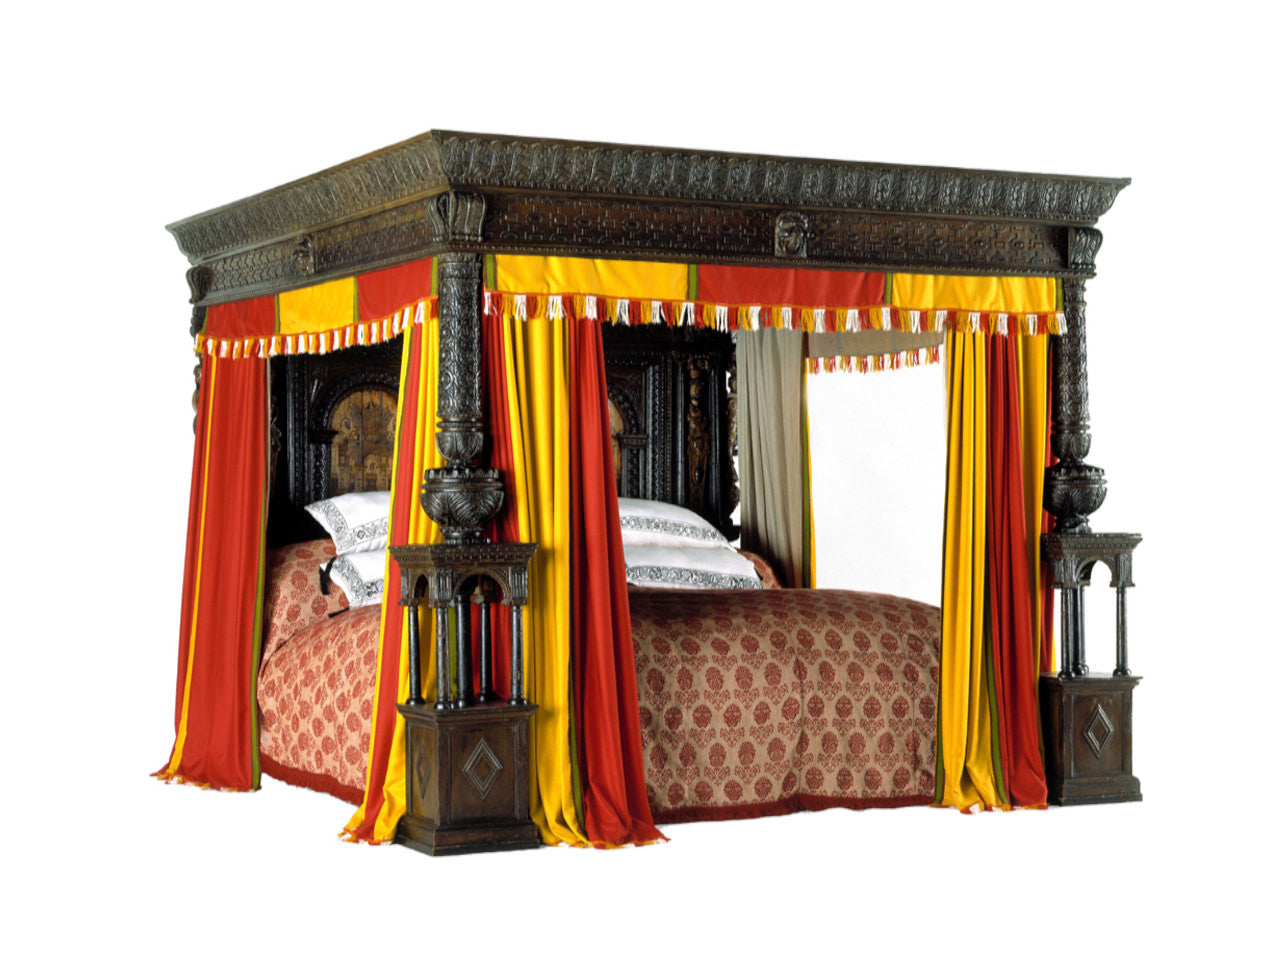 The Great Bed of Ware, circa 1590.